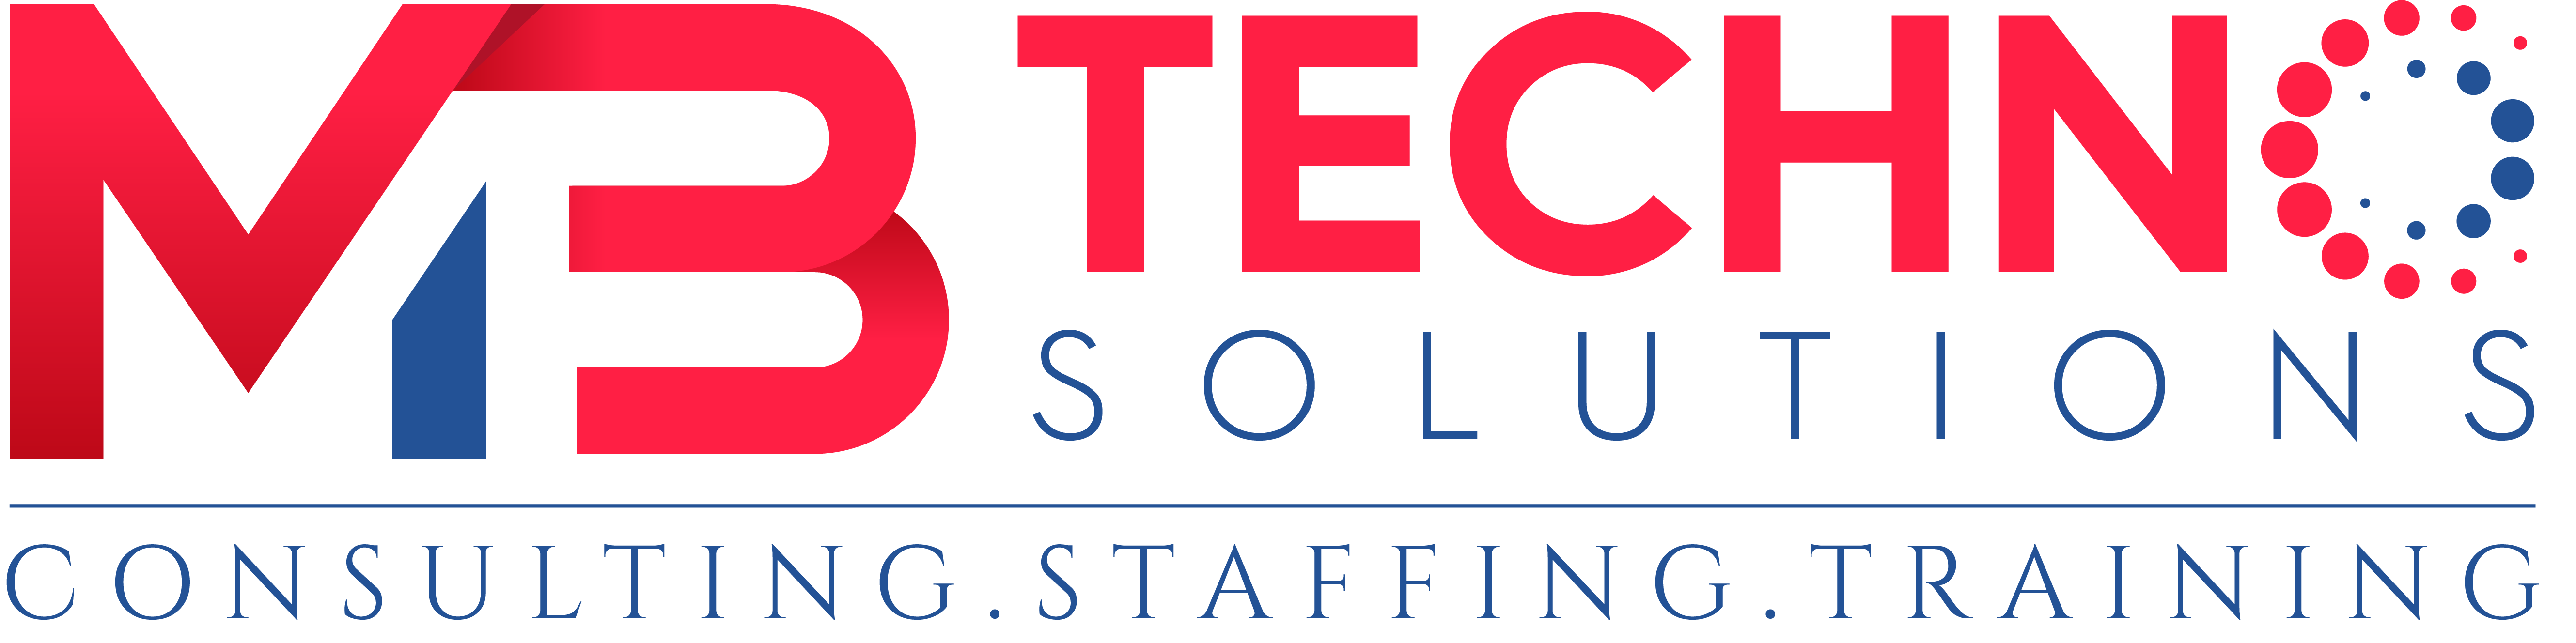 mbtechnosolutions.com